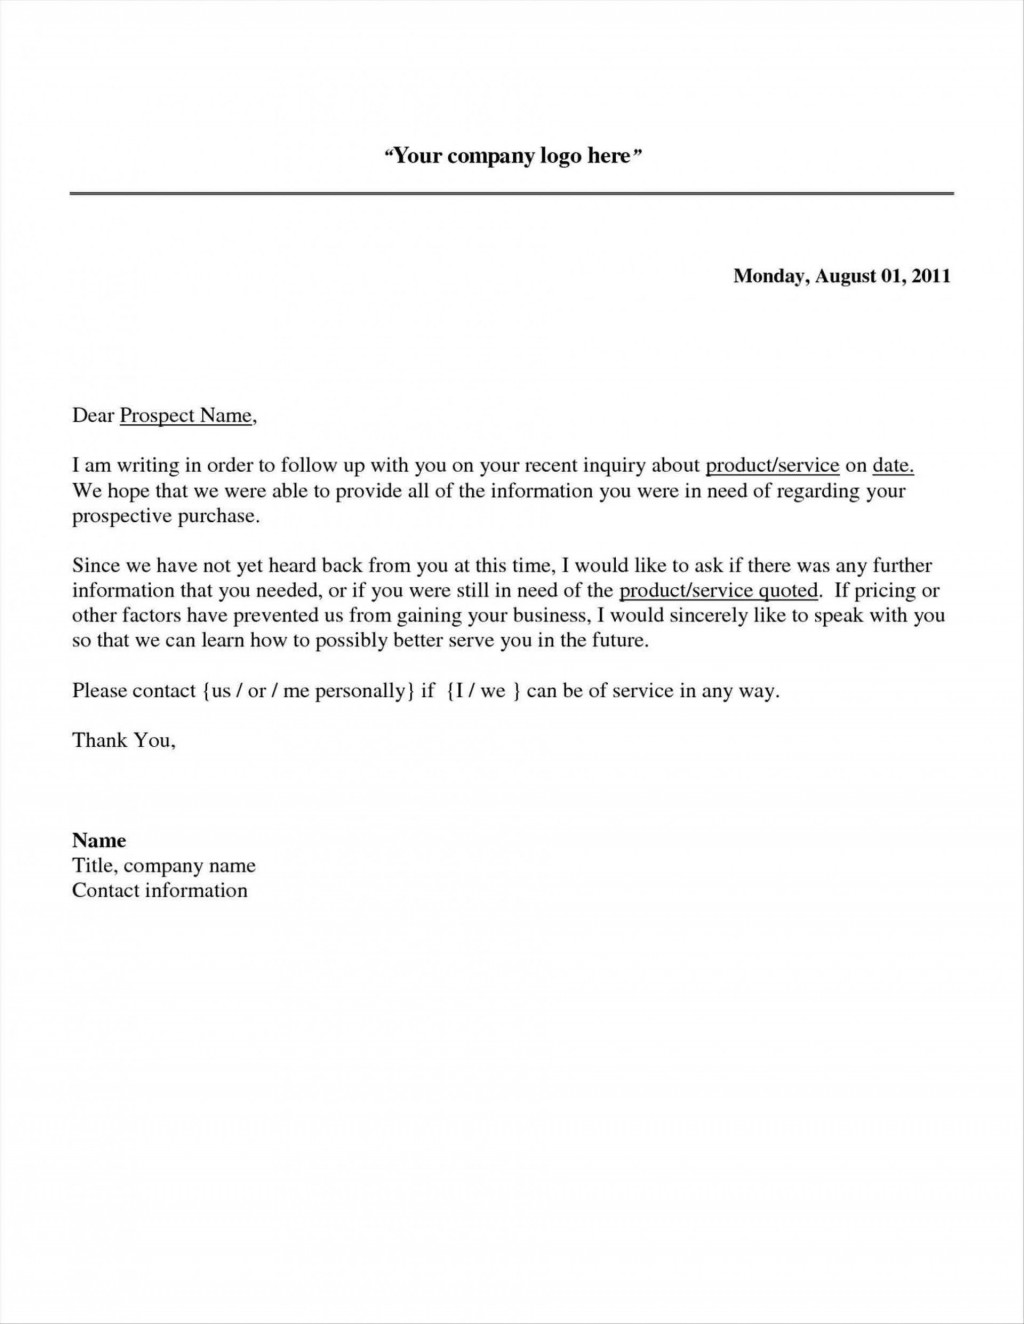 006 Wondrou Follow Up Email Letter For Job Application Picture  Template Example After Writing ALarge